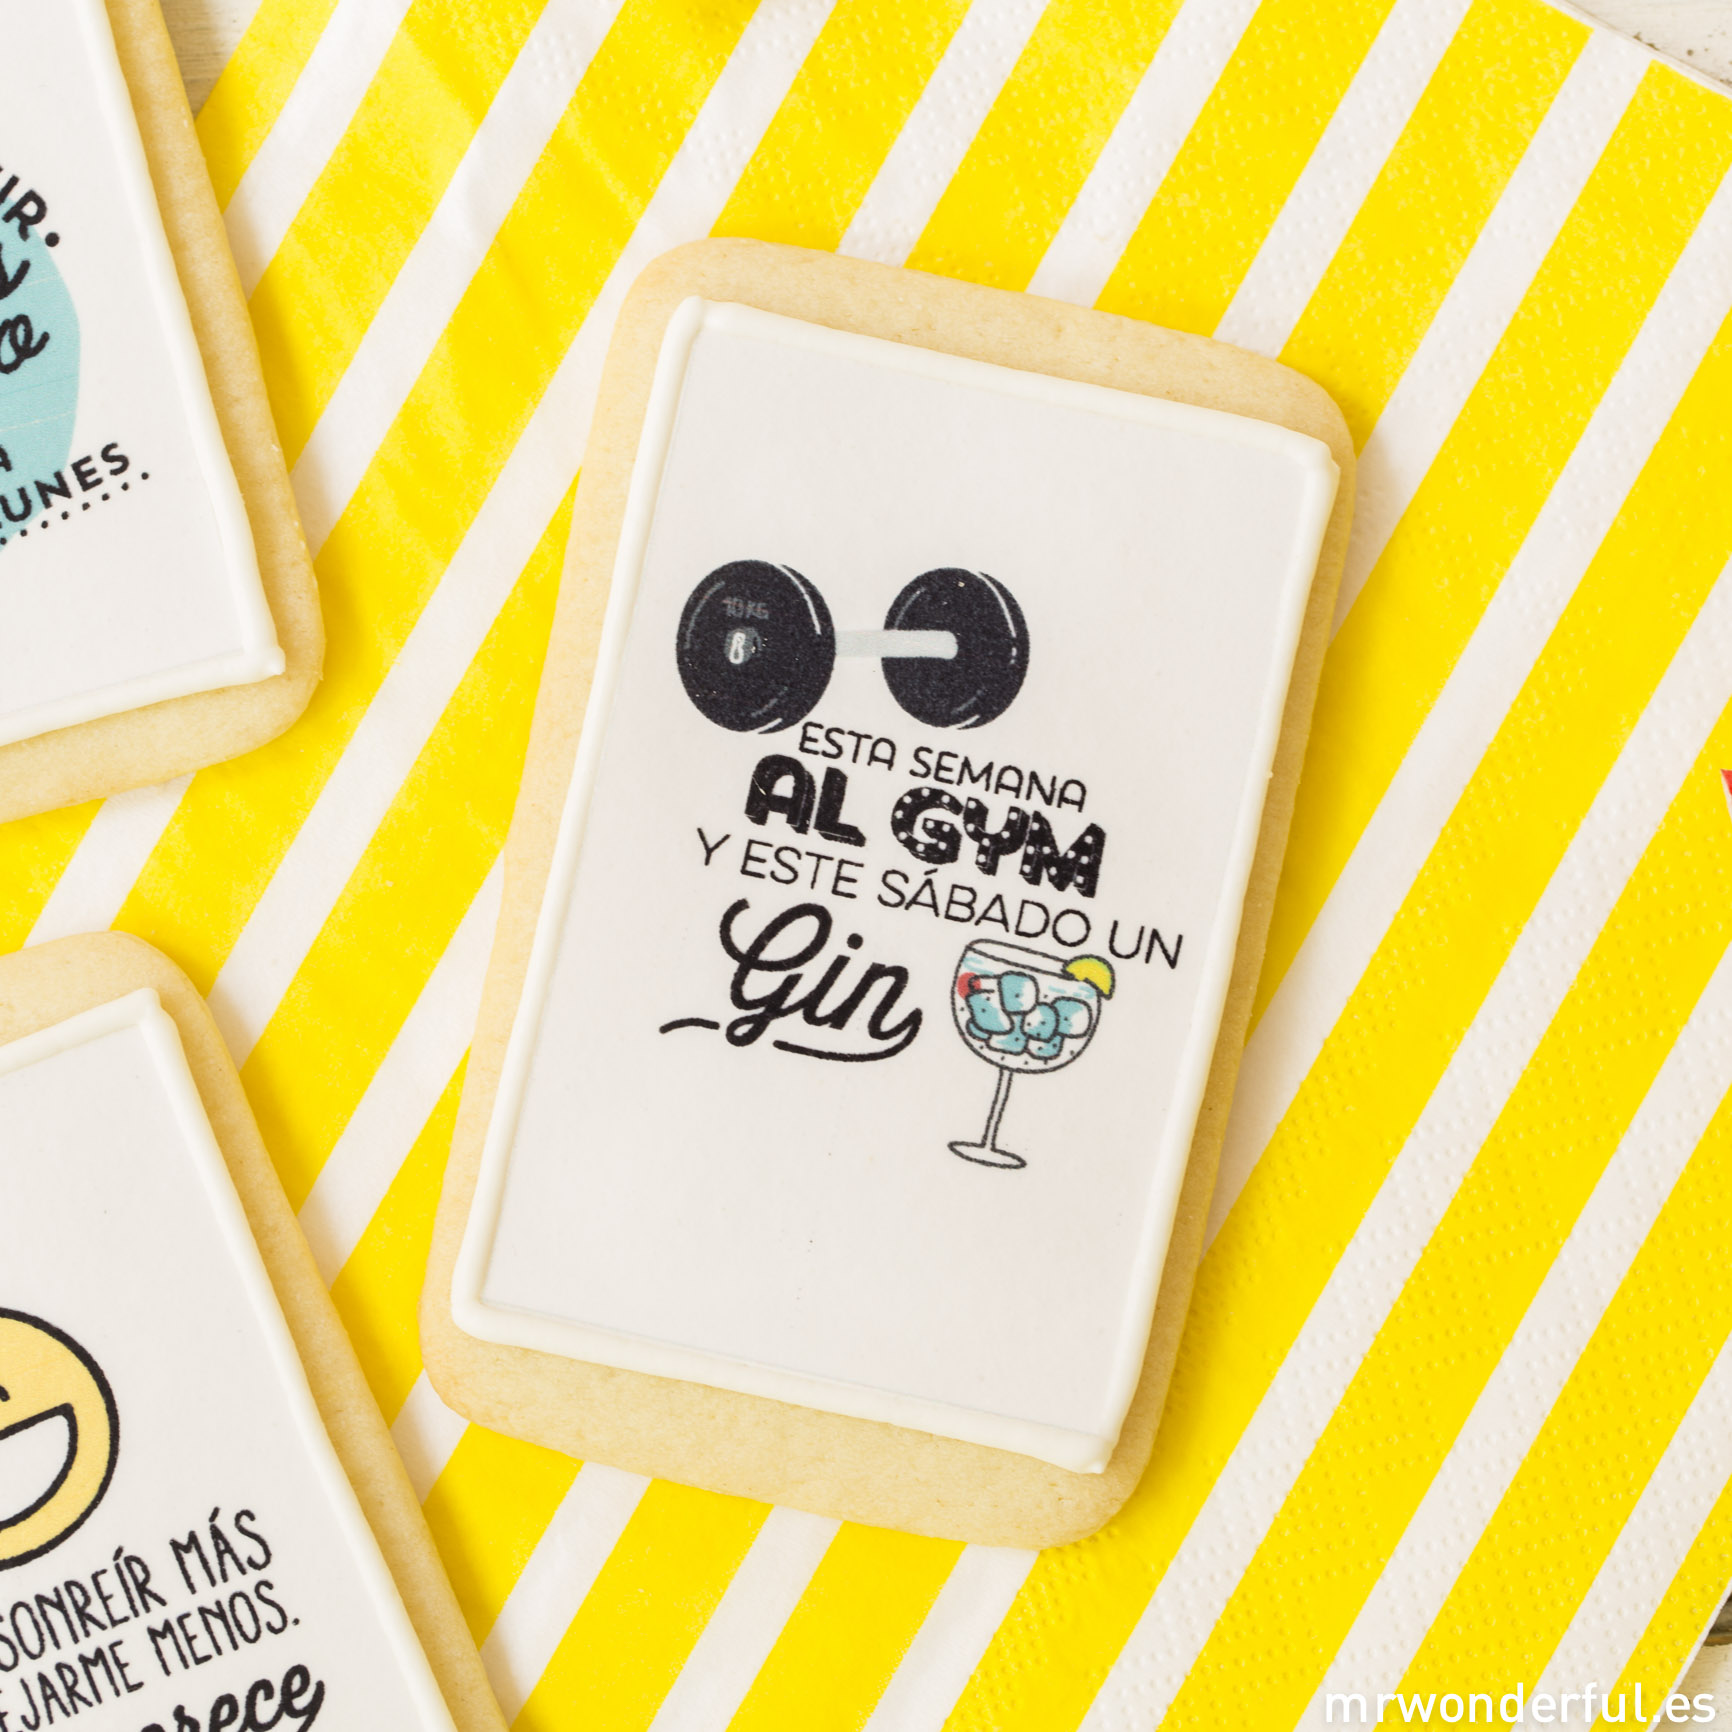 mrwonderful_colaboraciones_galletas-kukis_SEP2014-64